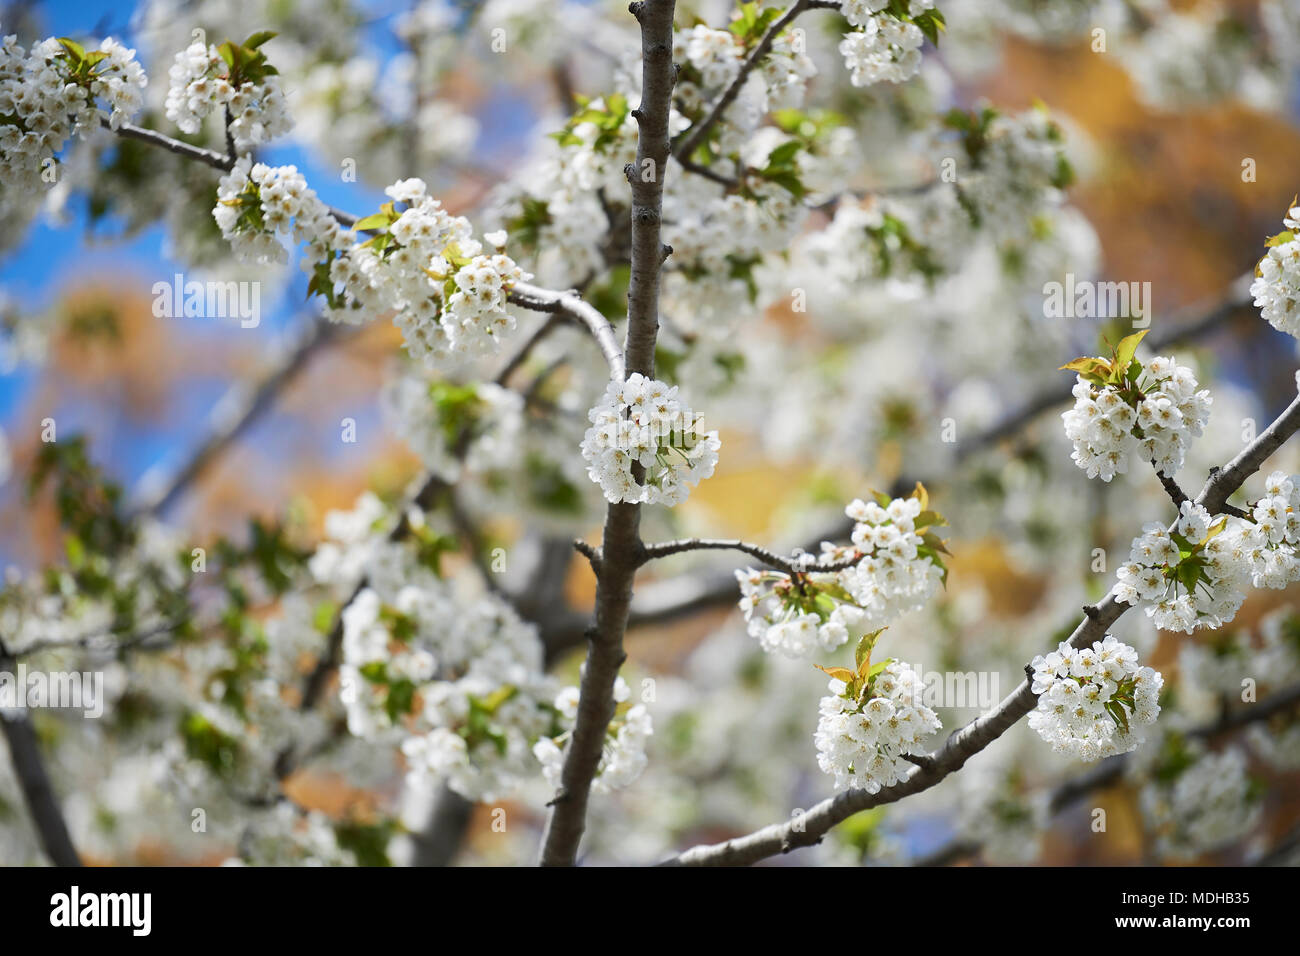 Close Up Of A Tree Flowering With Clusters Of Small White Blossoms